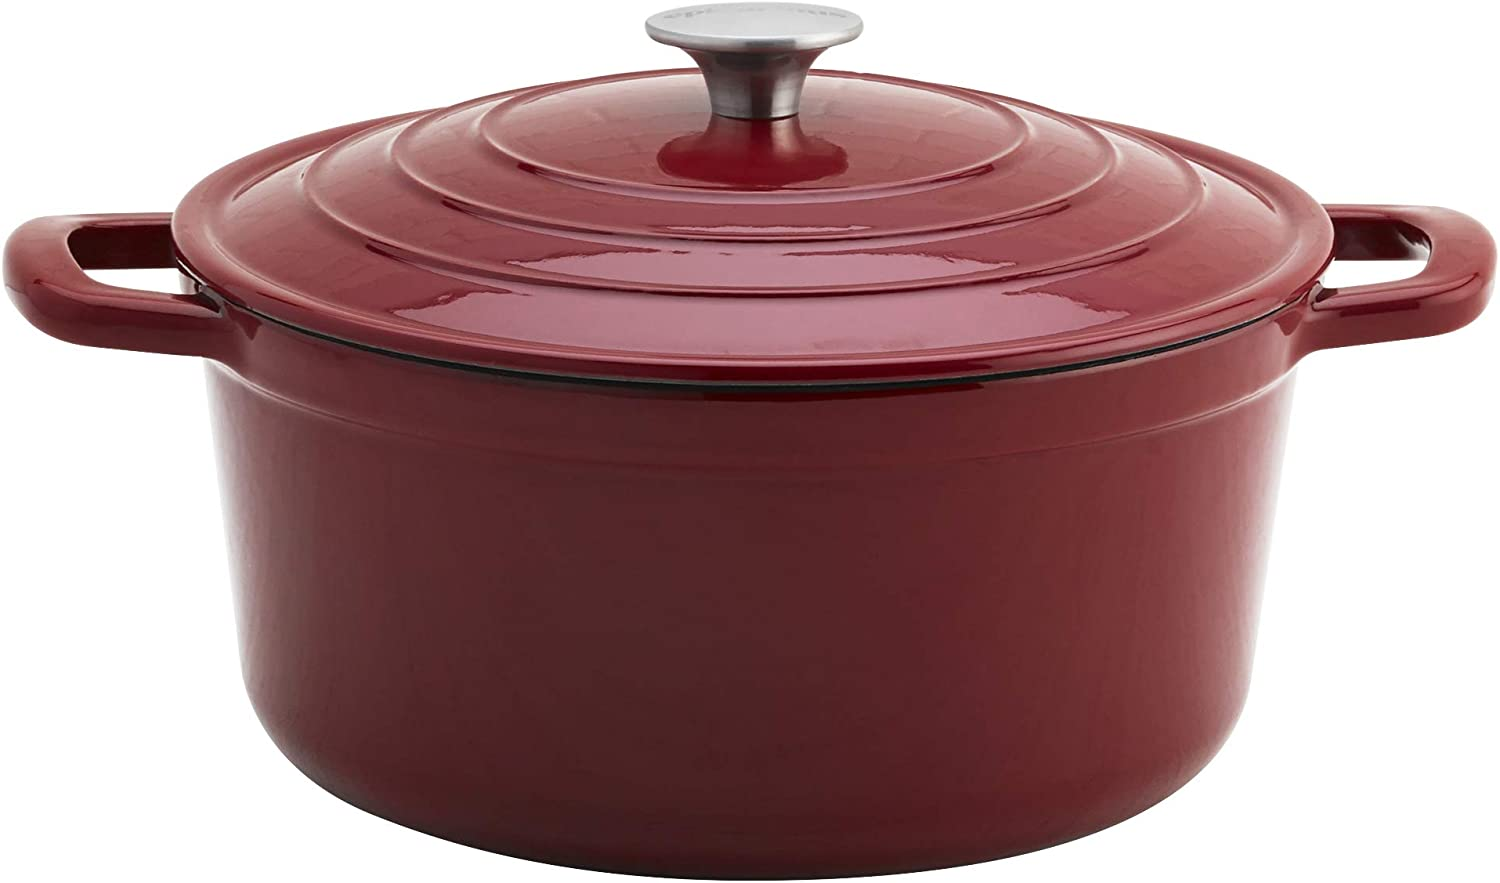 Epicurious Cookware Collection- Enameled Cast Iron Covered Dutch Oven, 6 Quart Dutch Oven Red